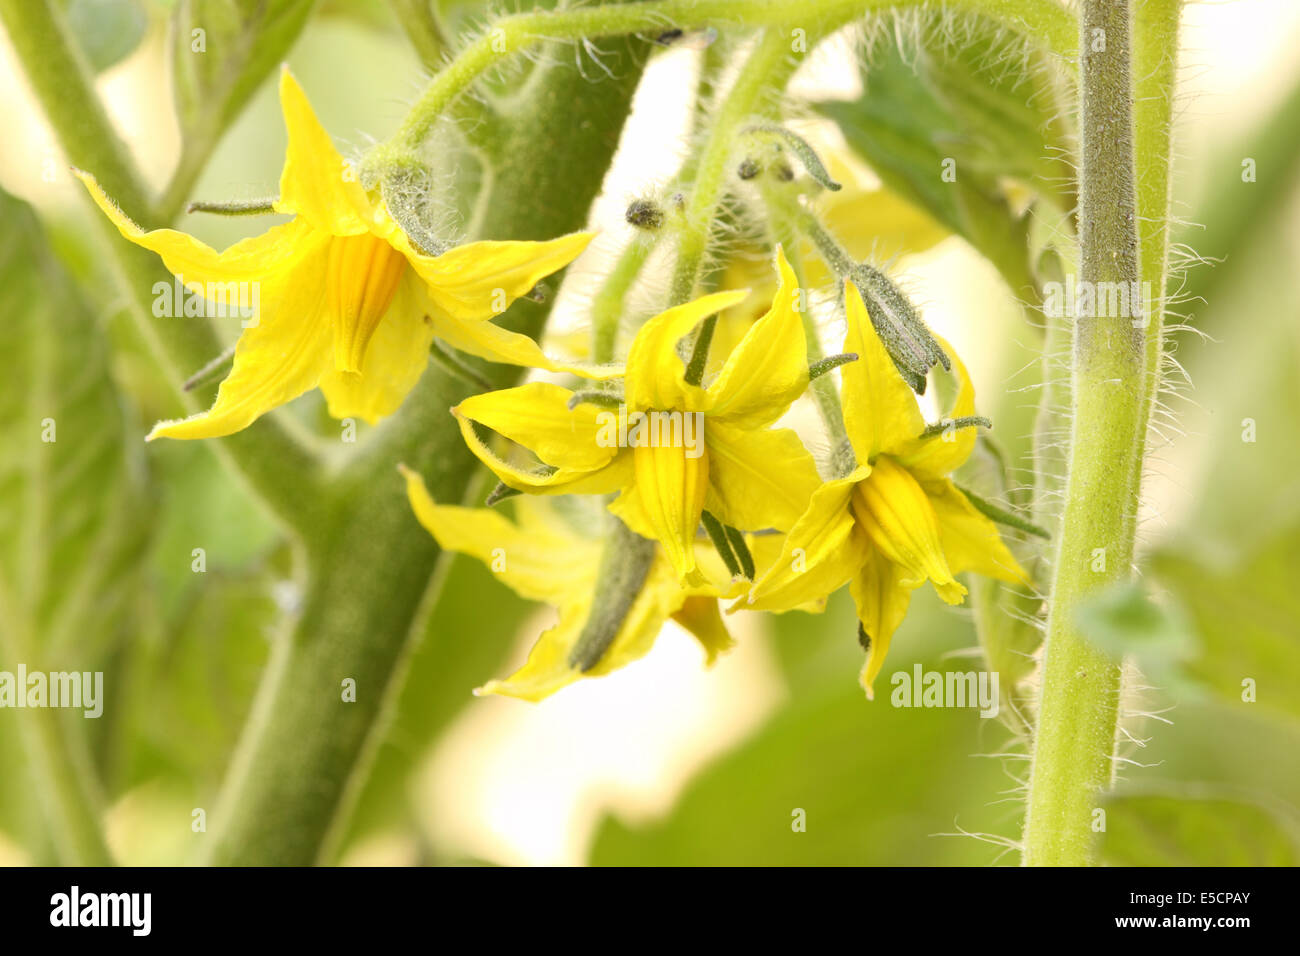 Tomato plant yellow flowers before germination moneymaker variety tomato plant yellow flowers before germination moneymaker variety mightylinksfo Choice Image